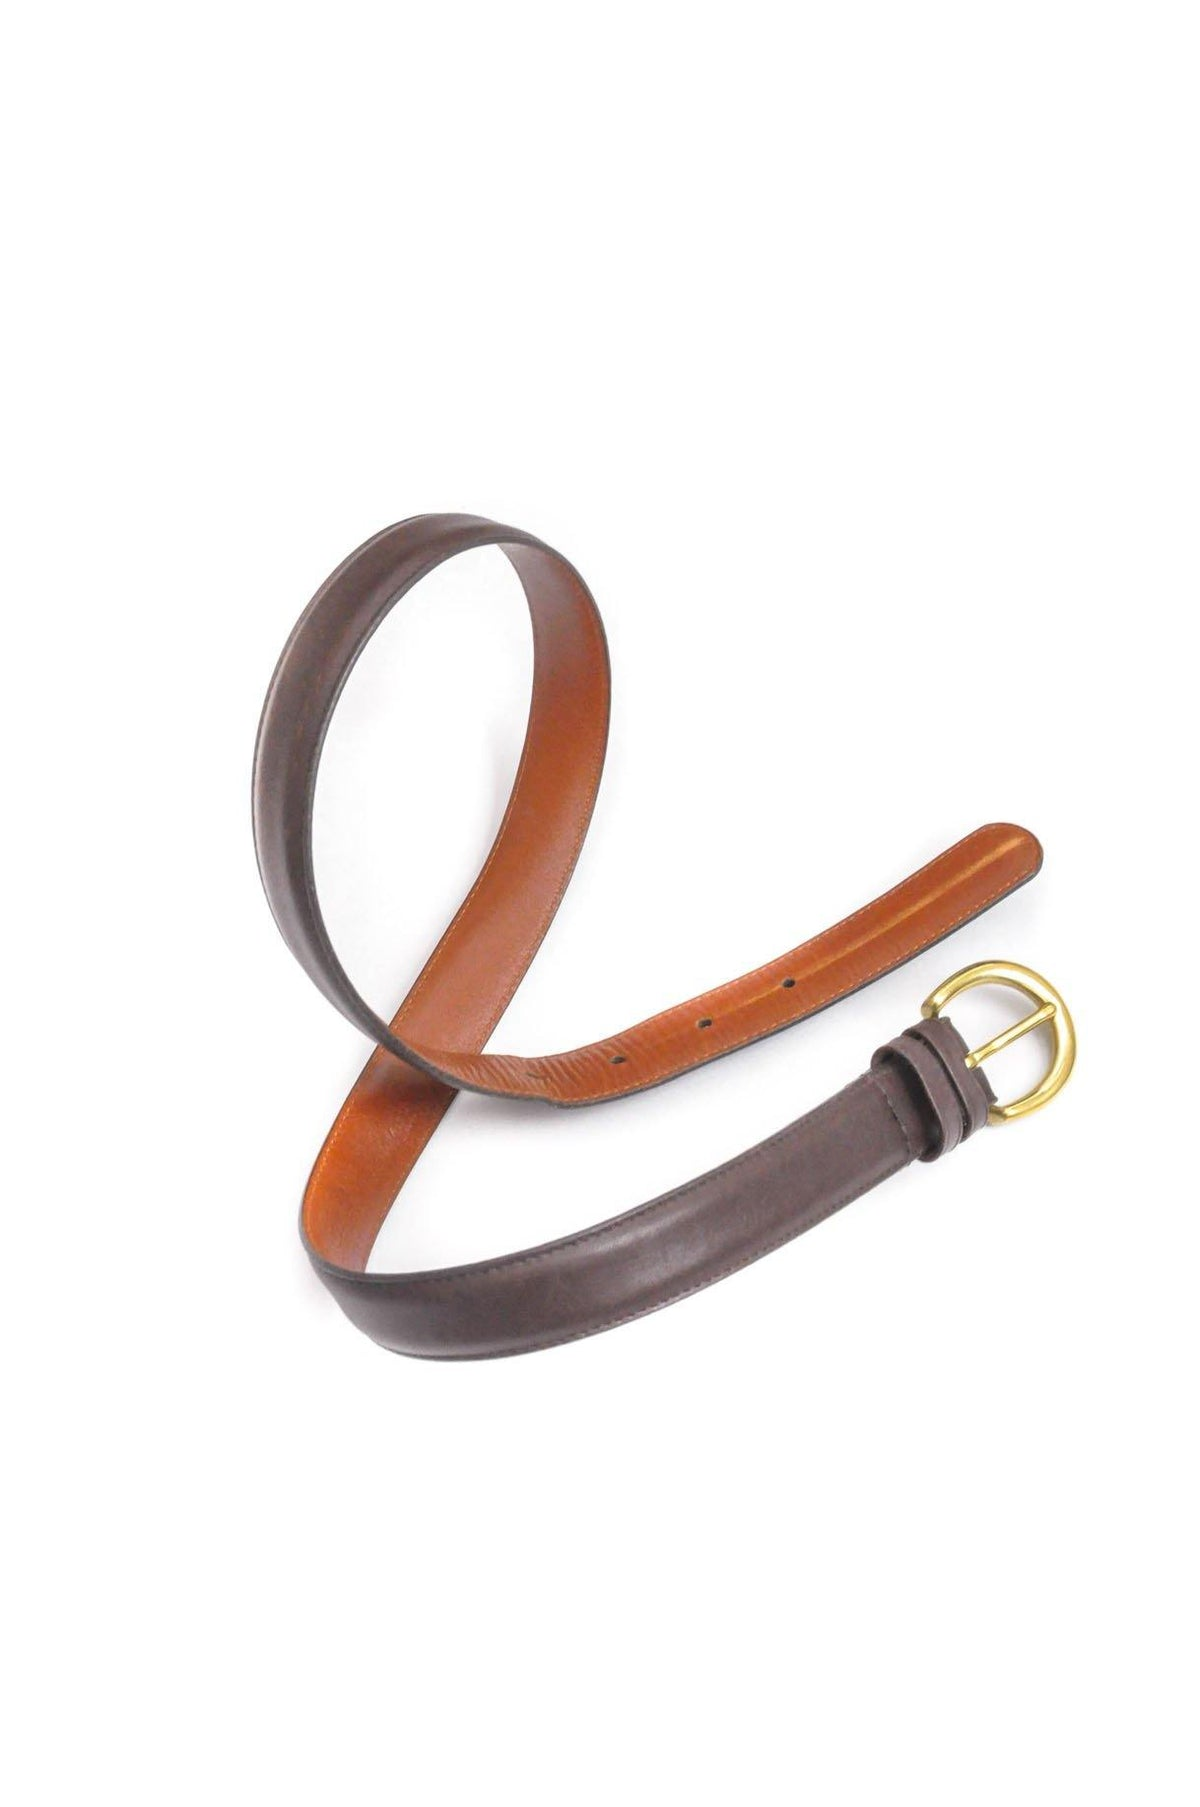 Vintage Brown Coach Belt from Sweet and Spark.